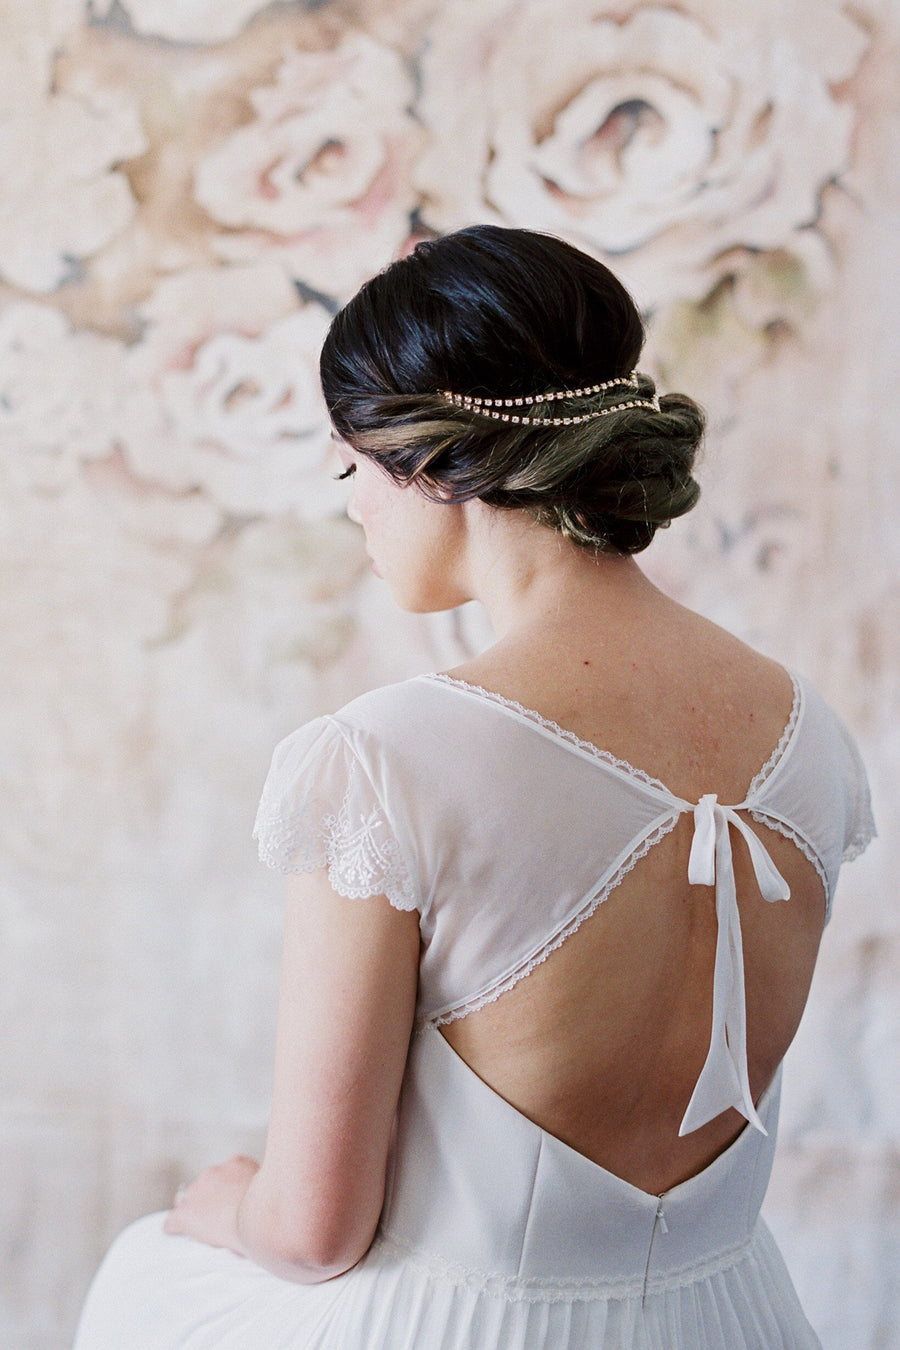 Danani | Double Draped V Headpiece - Style #225 | David Newkirk Photography